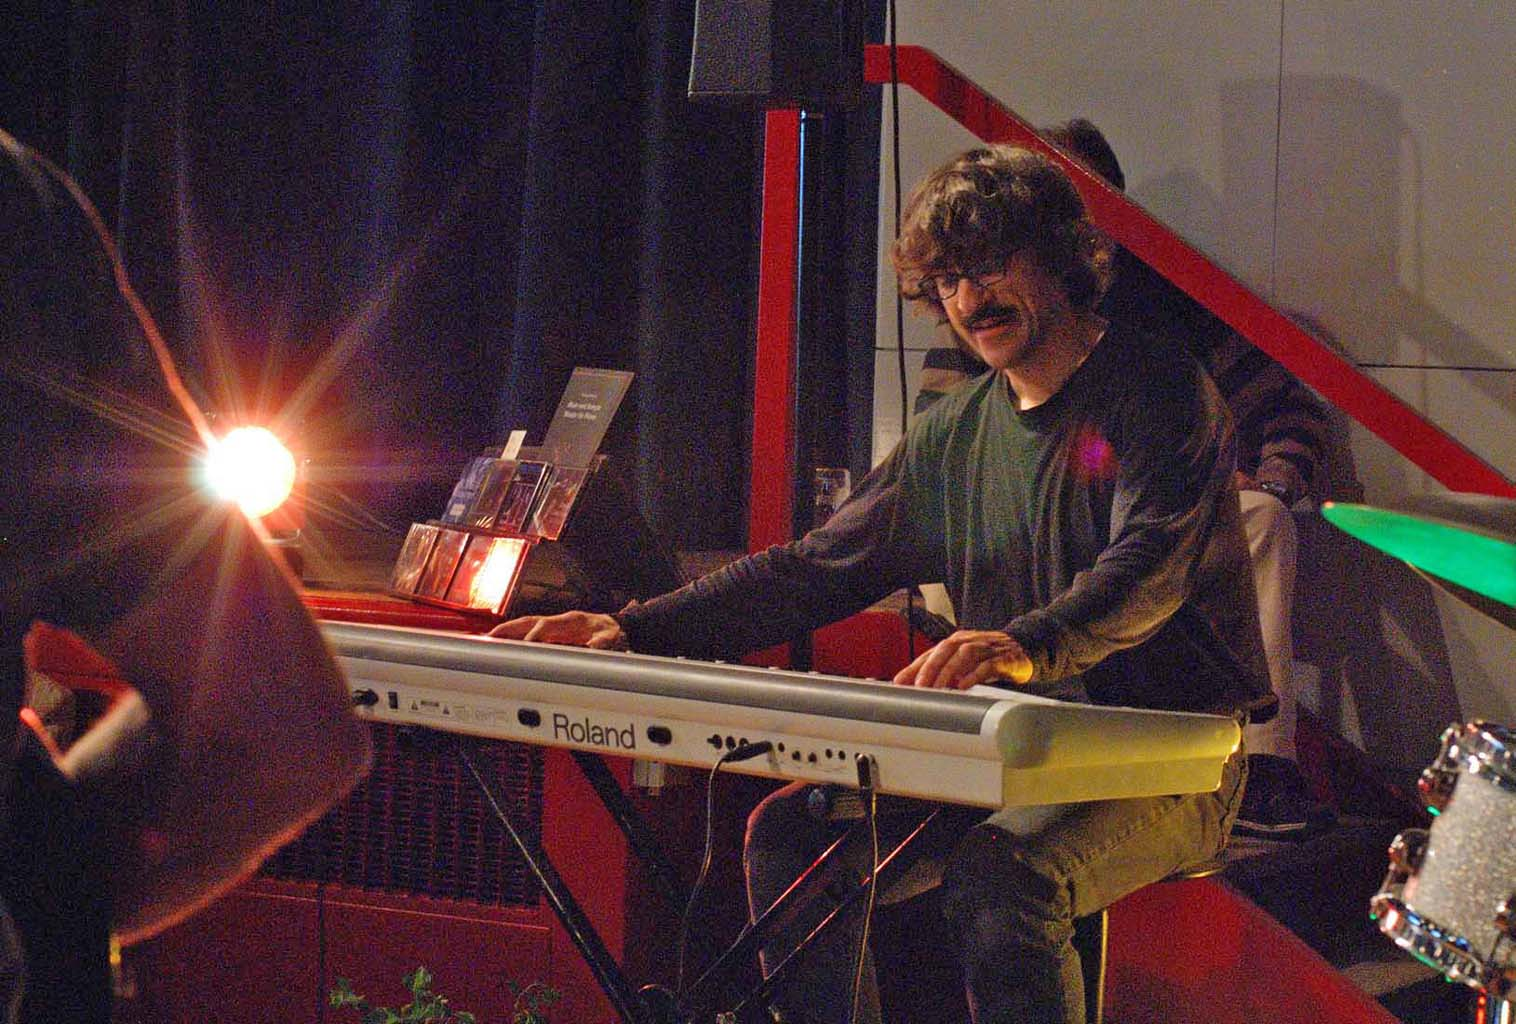 25_Boogie Connection Thomas Scheytt_022008.jpg